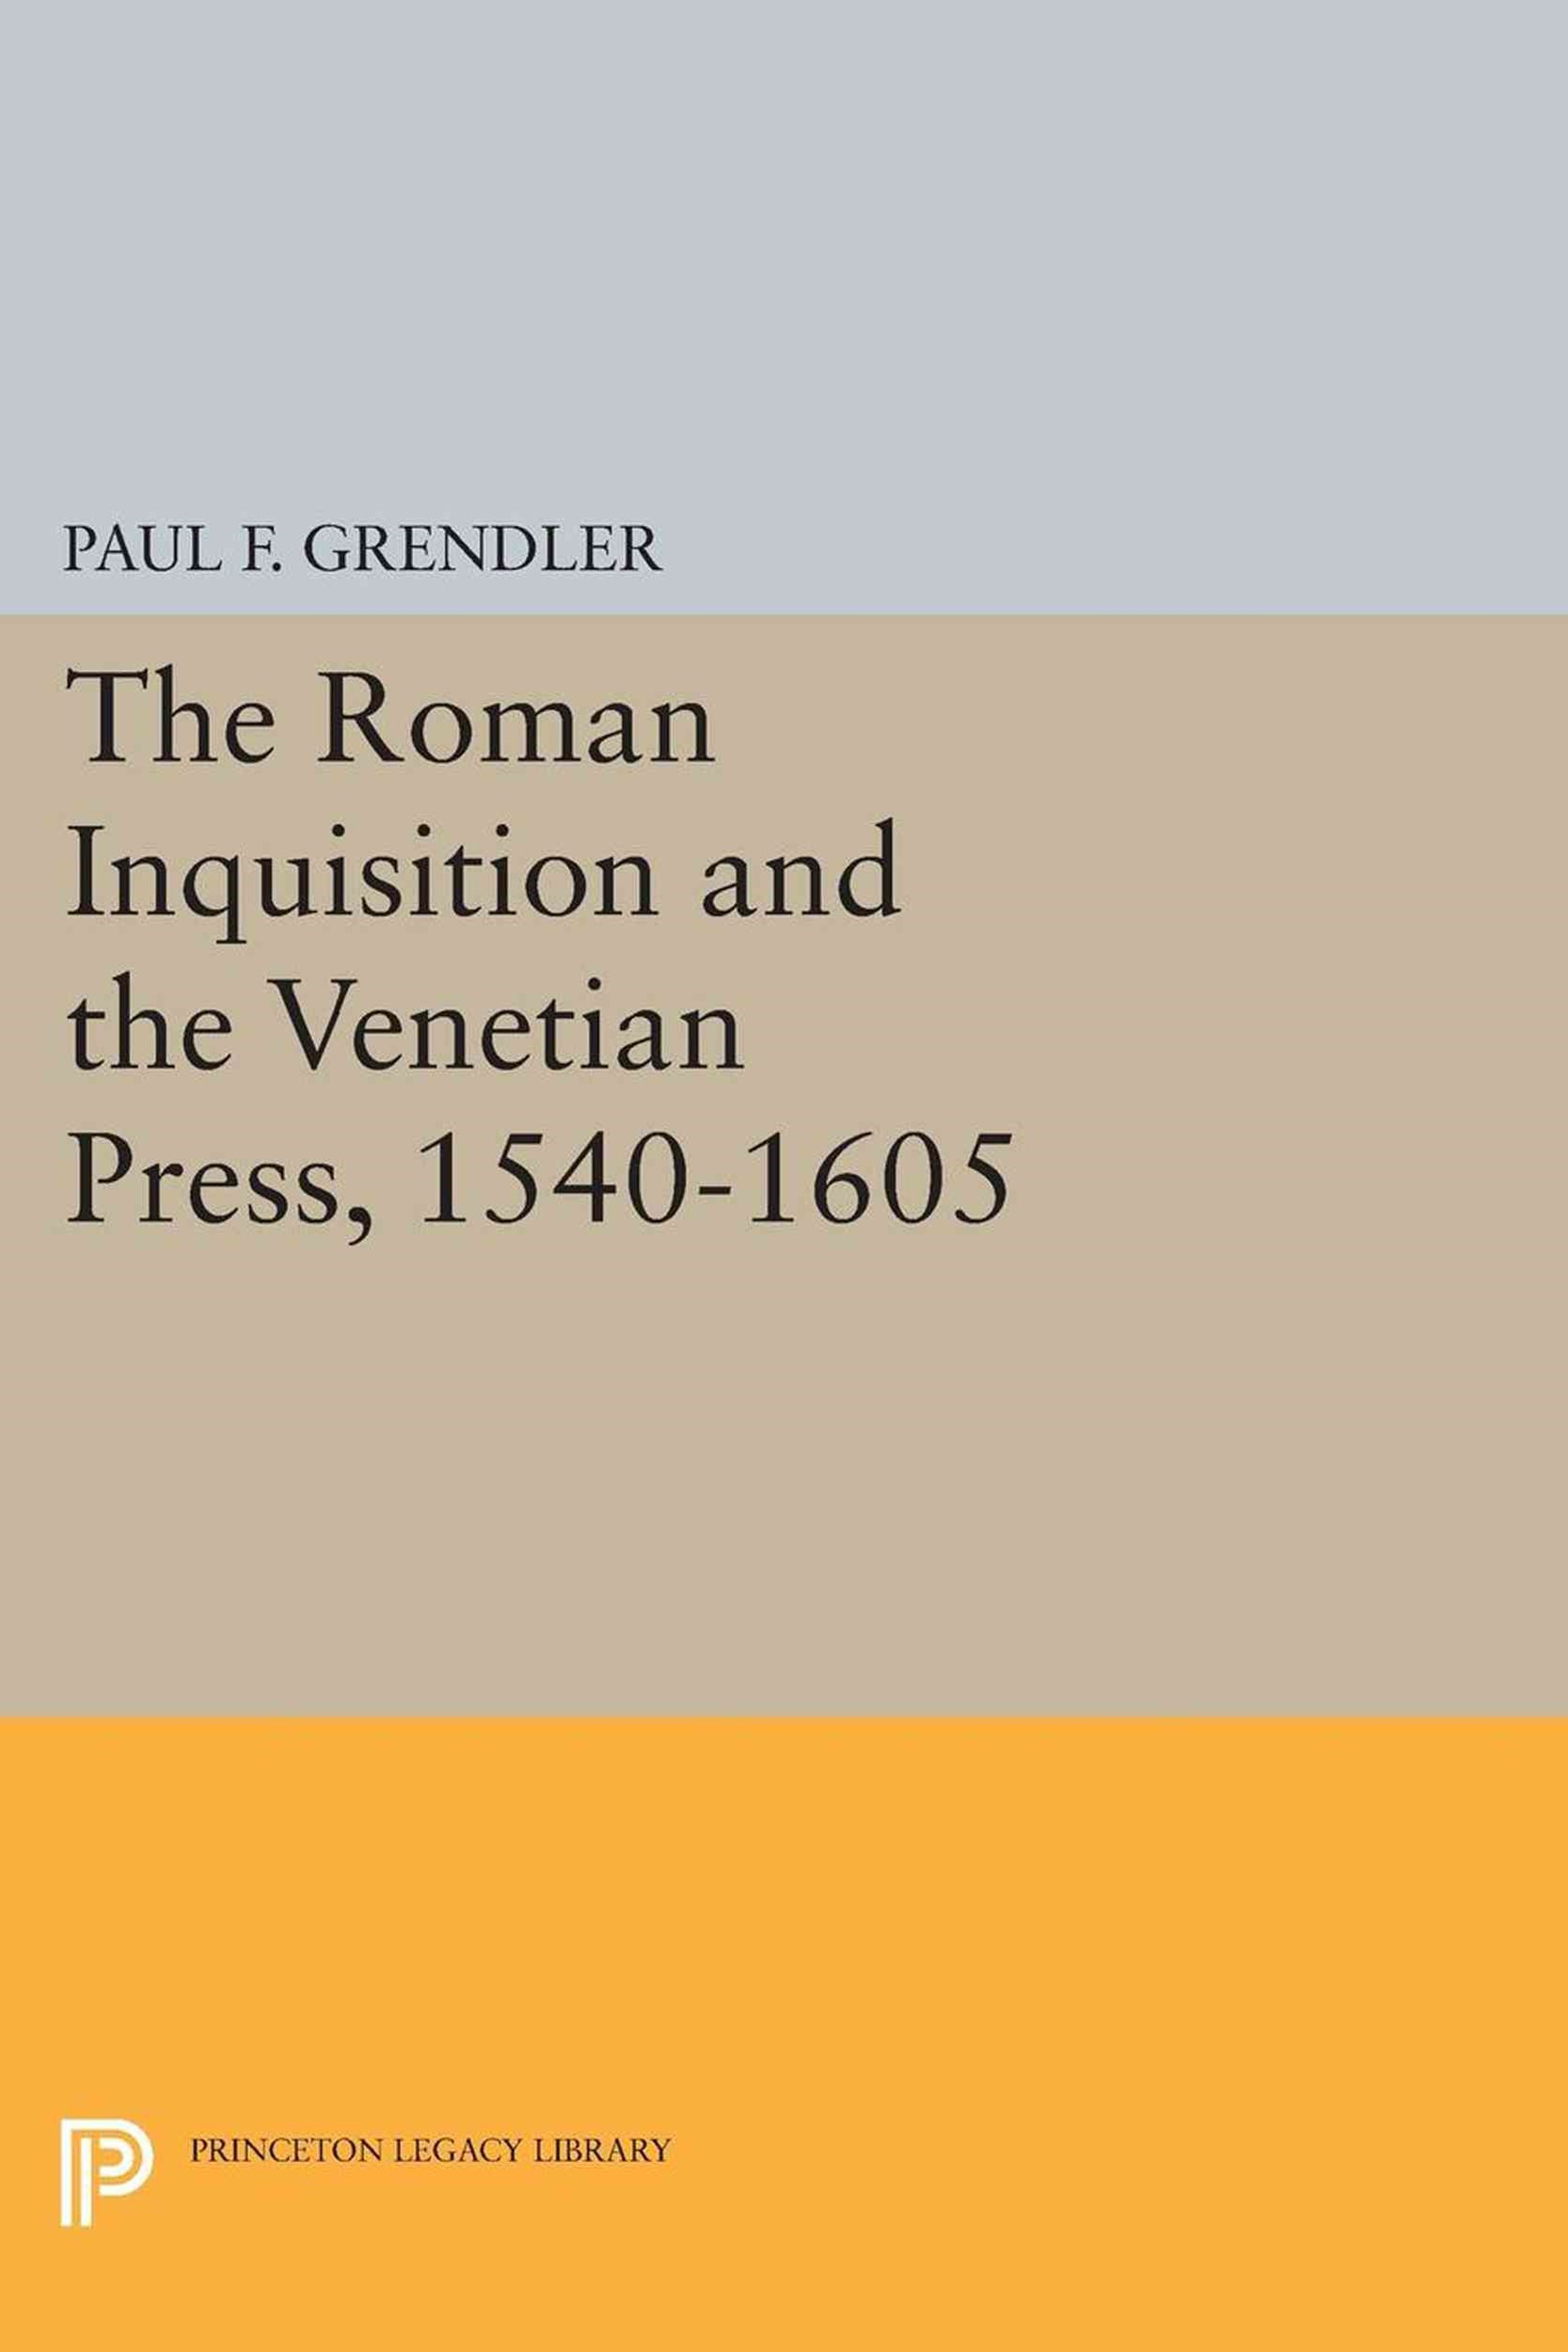 The Roman Inquisition and the Venetian Press, 1540-1605